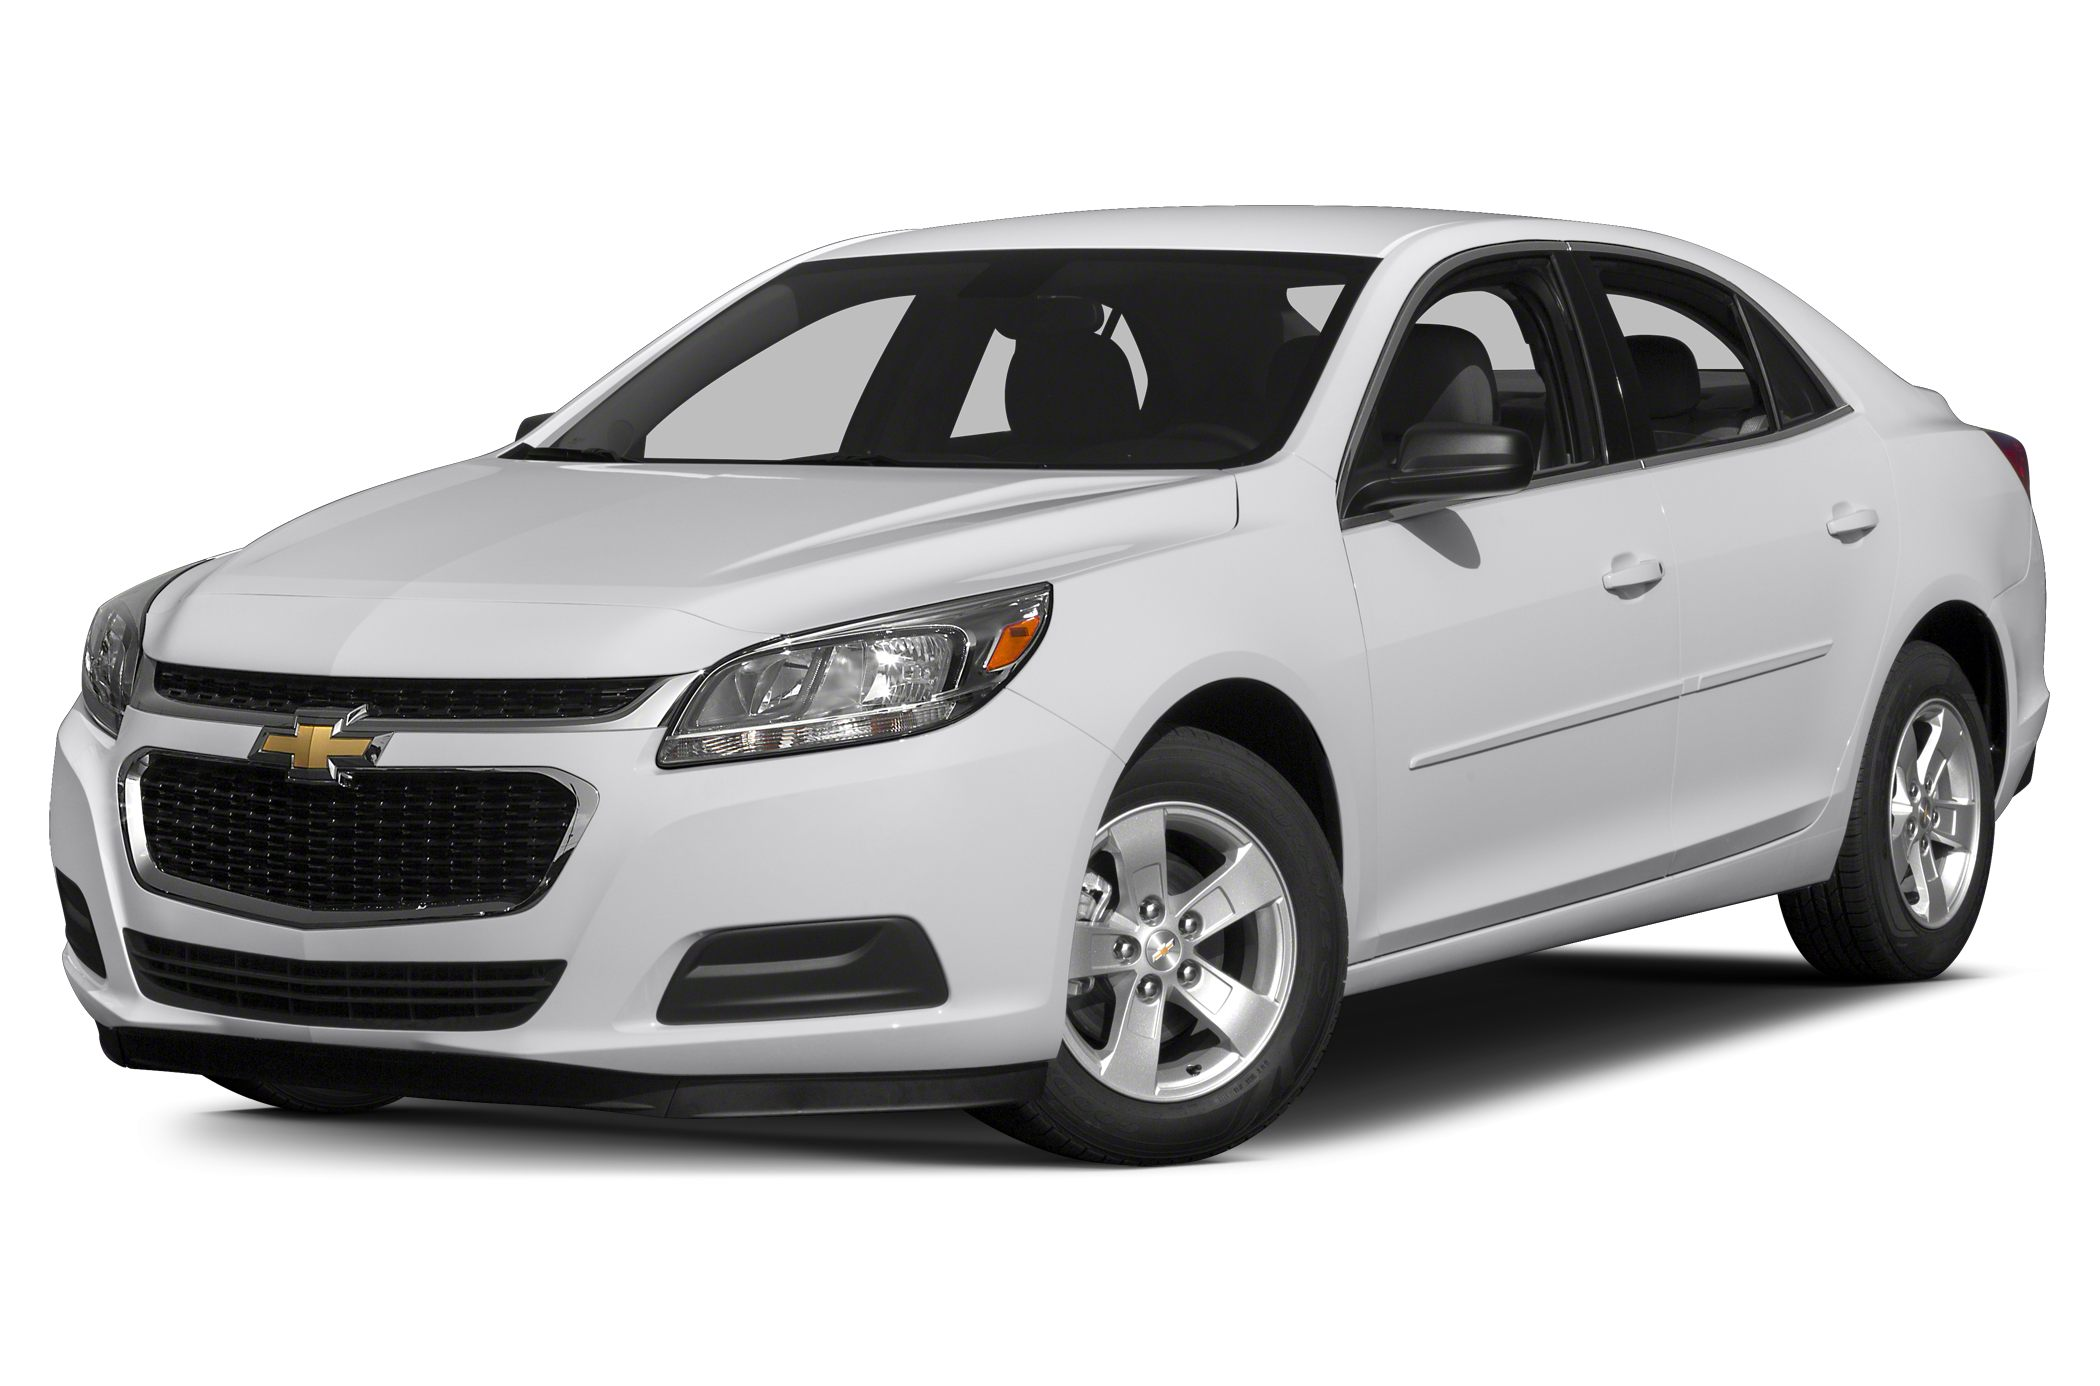 2015 Chevrolet Malibu 2LT Sedan for sale in Dalton for $28,995 with 0 miles